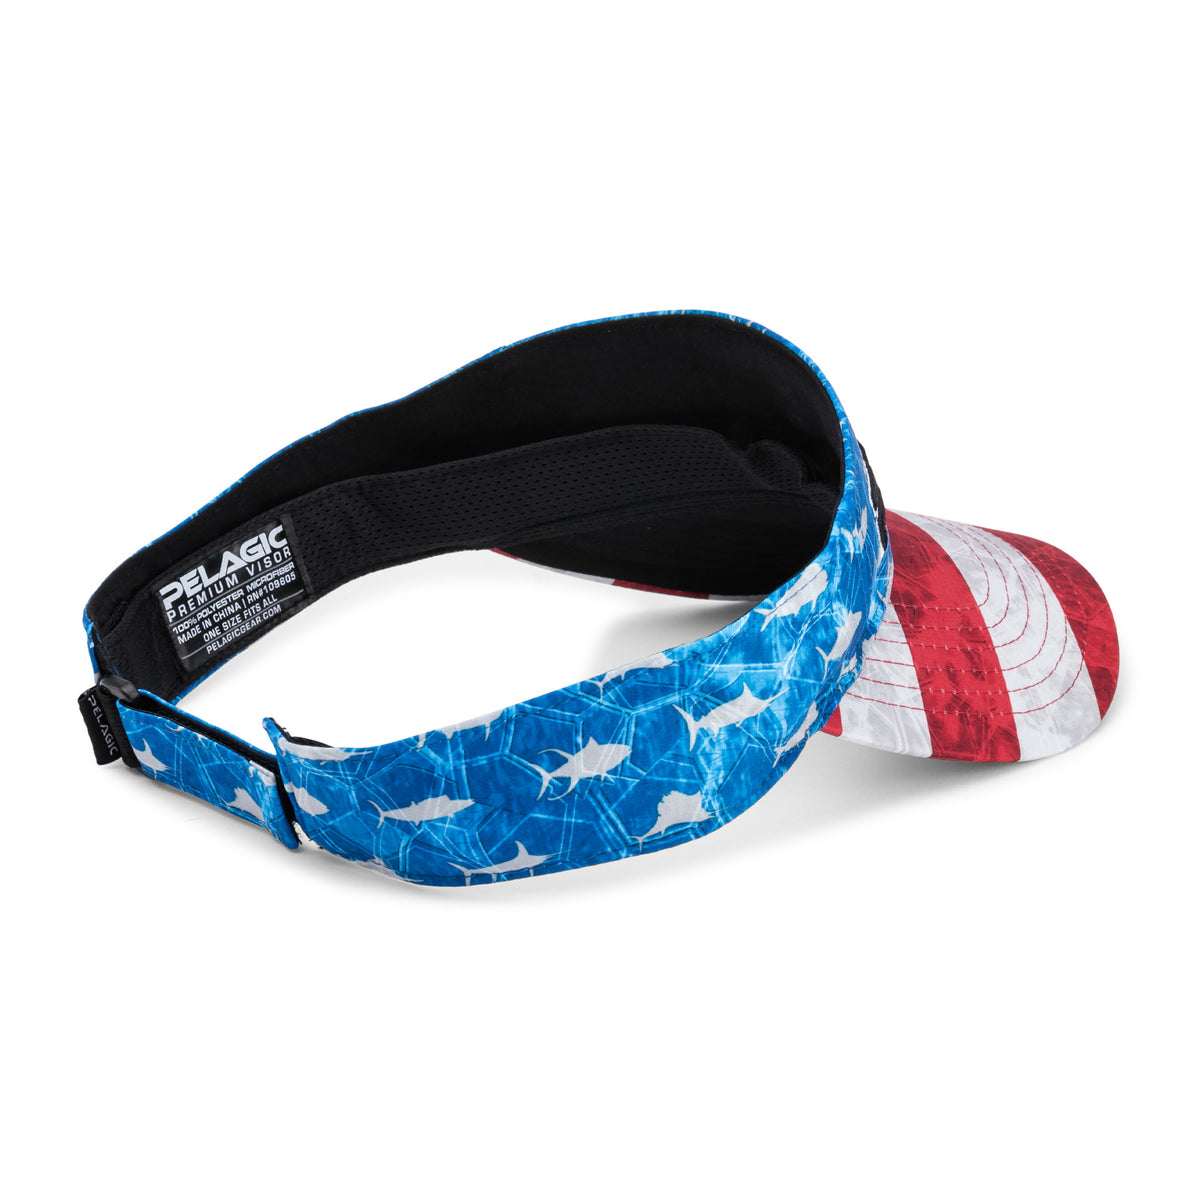 Performance Fishing Visor Big Image - 2